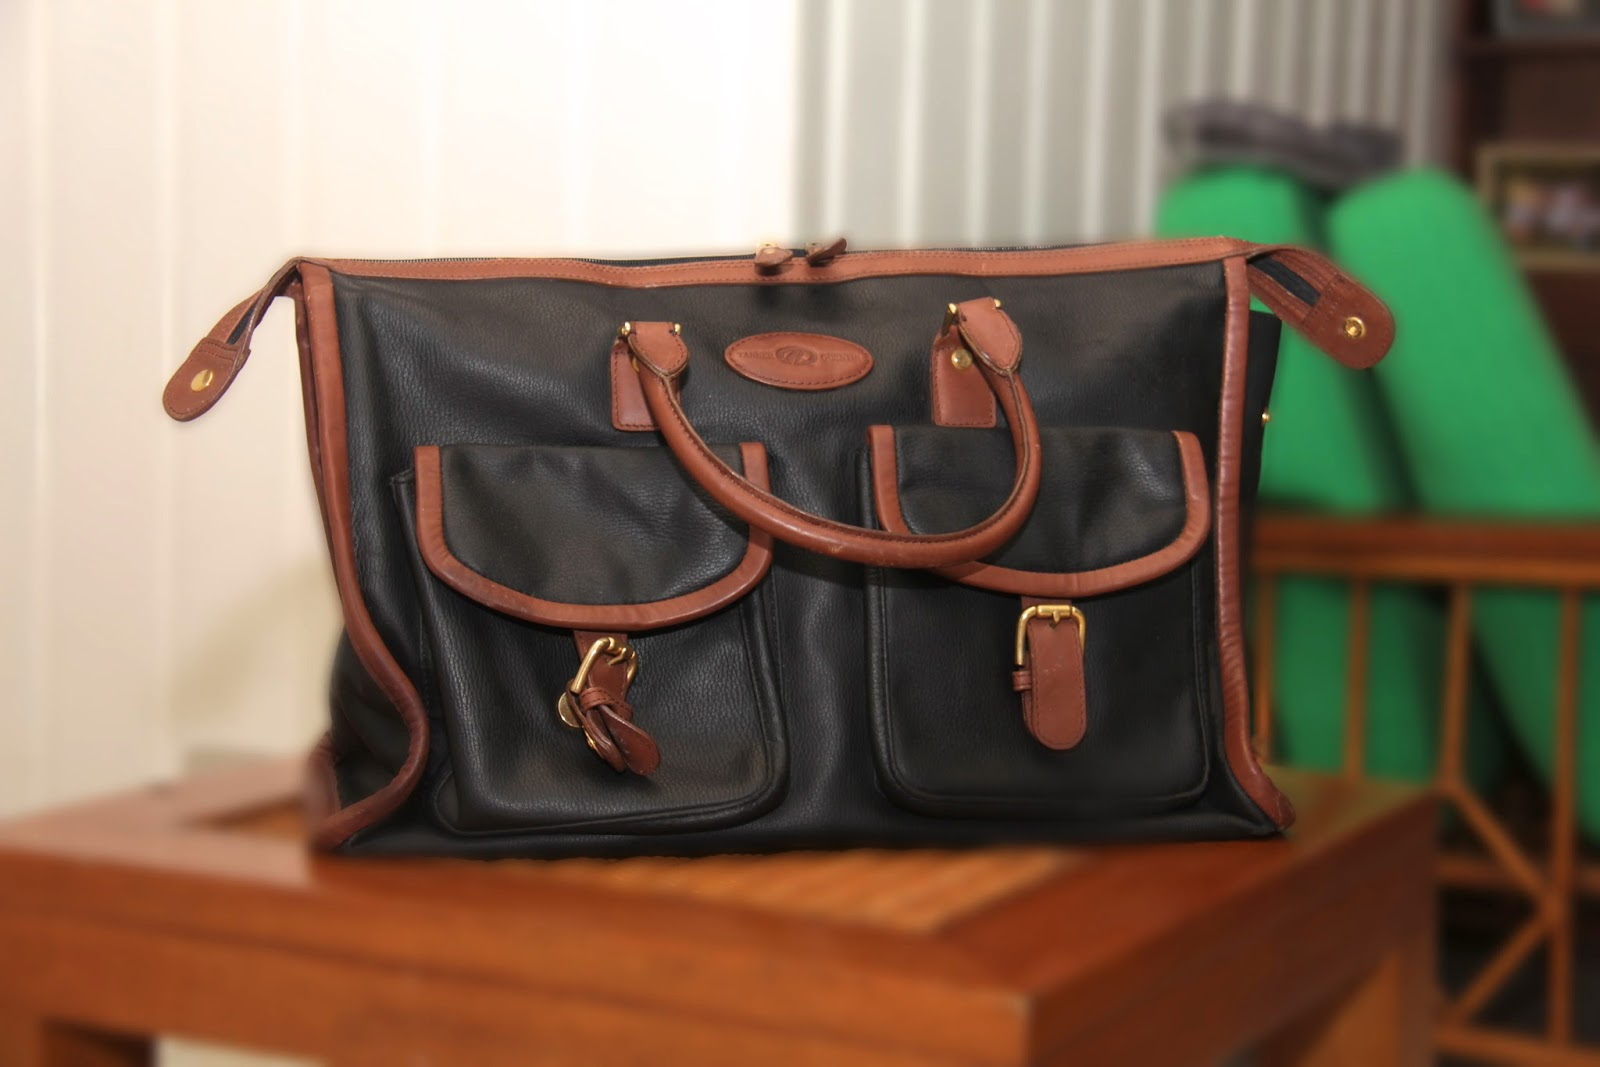 Bag Shops The House Of Queens Bag From The Vintage Shops In Baguio